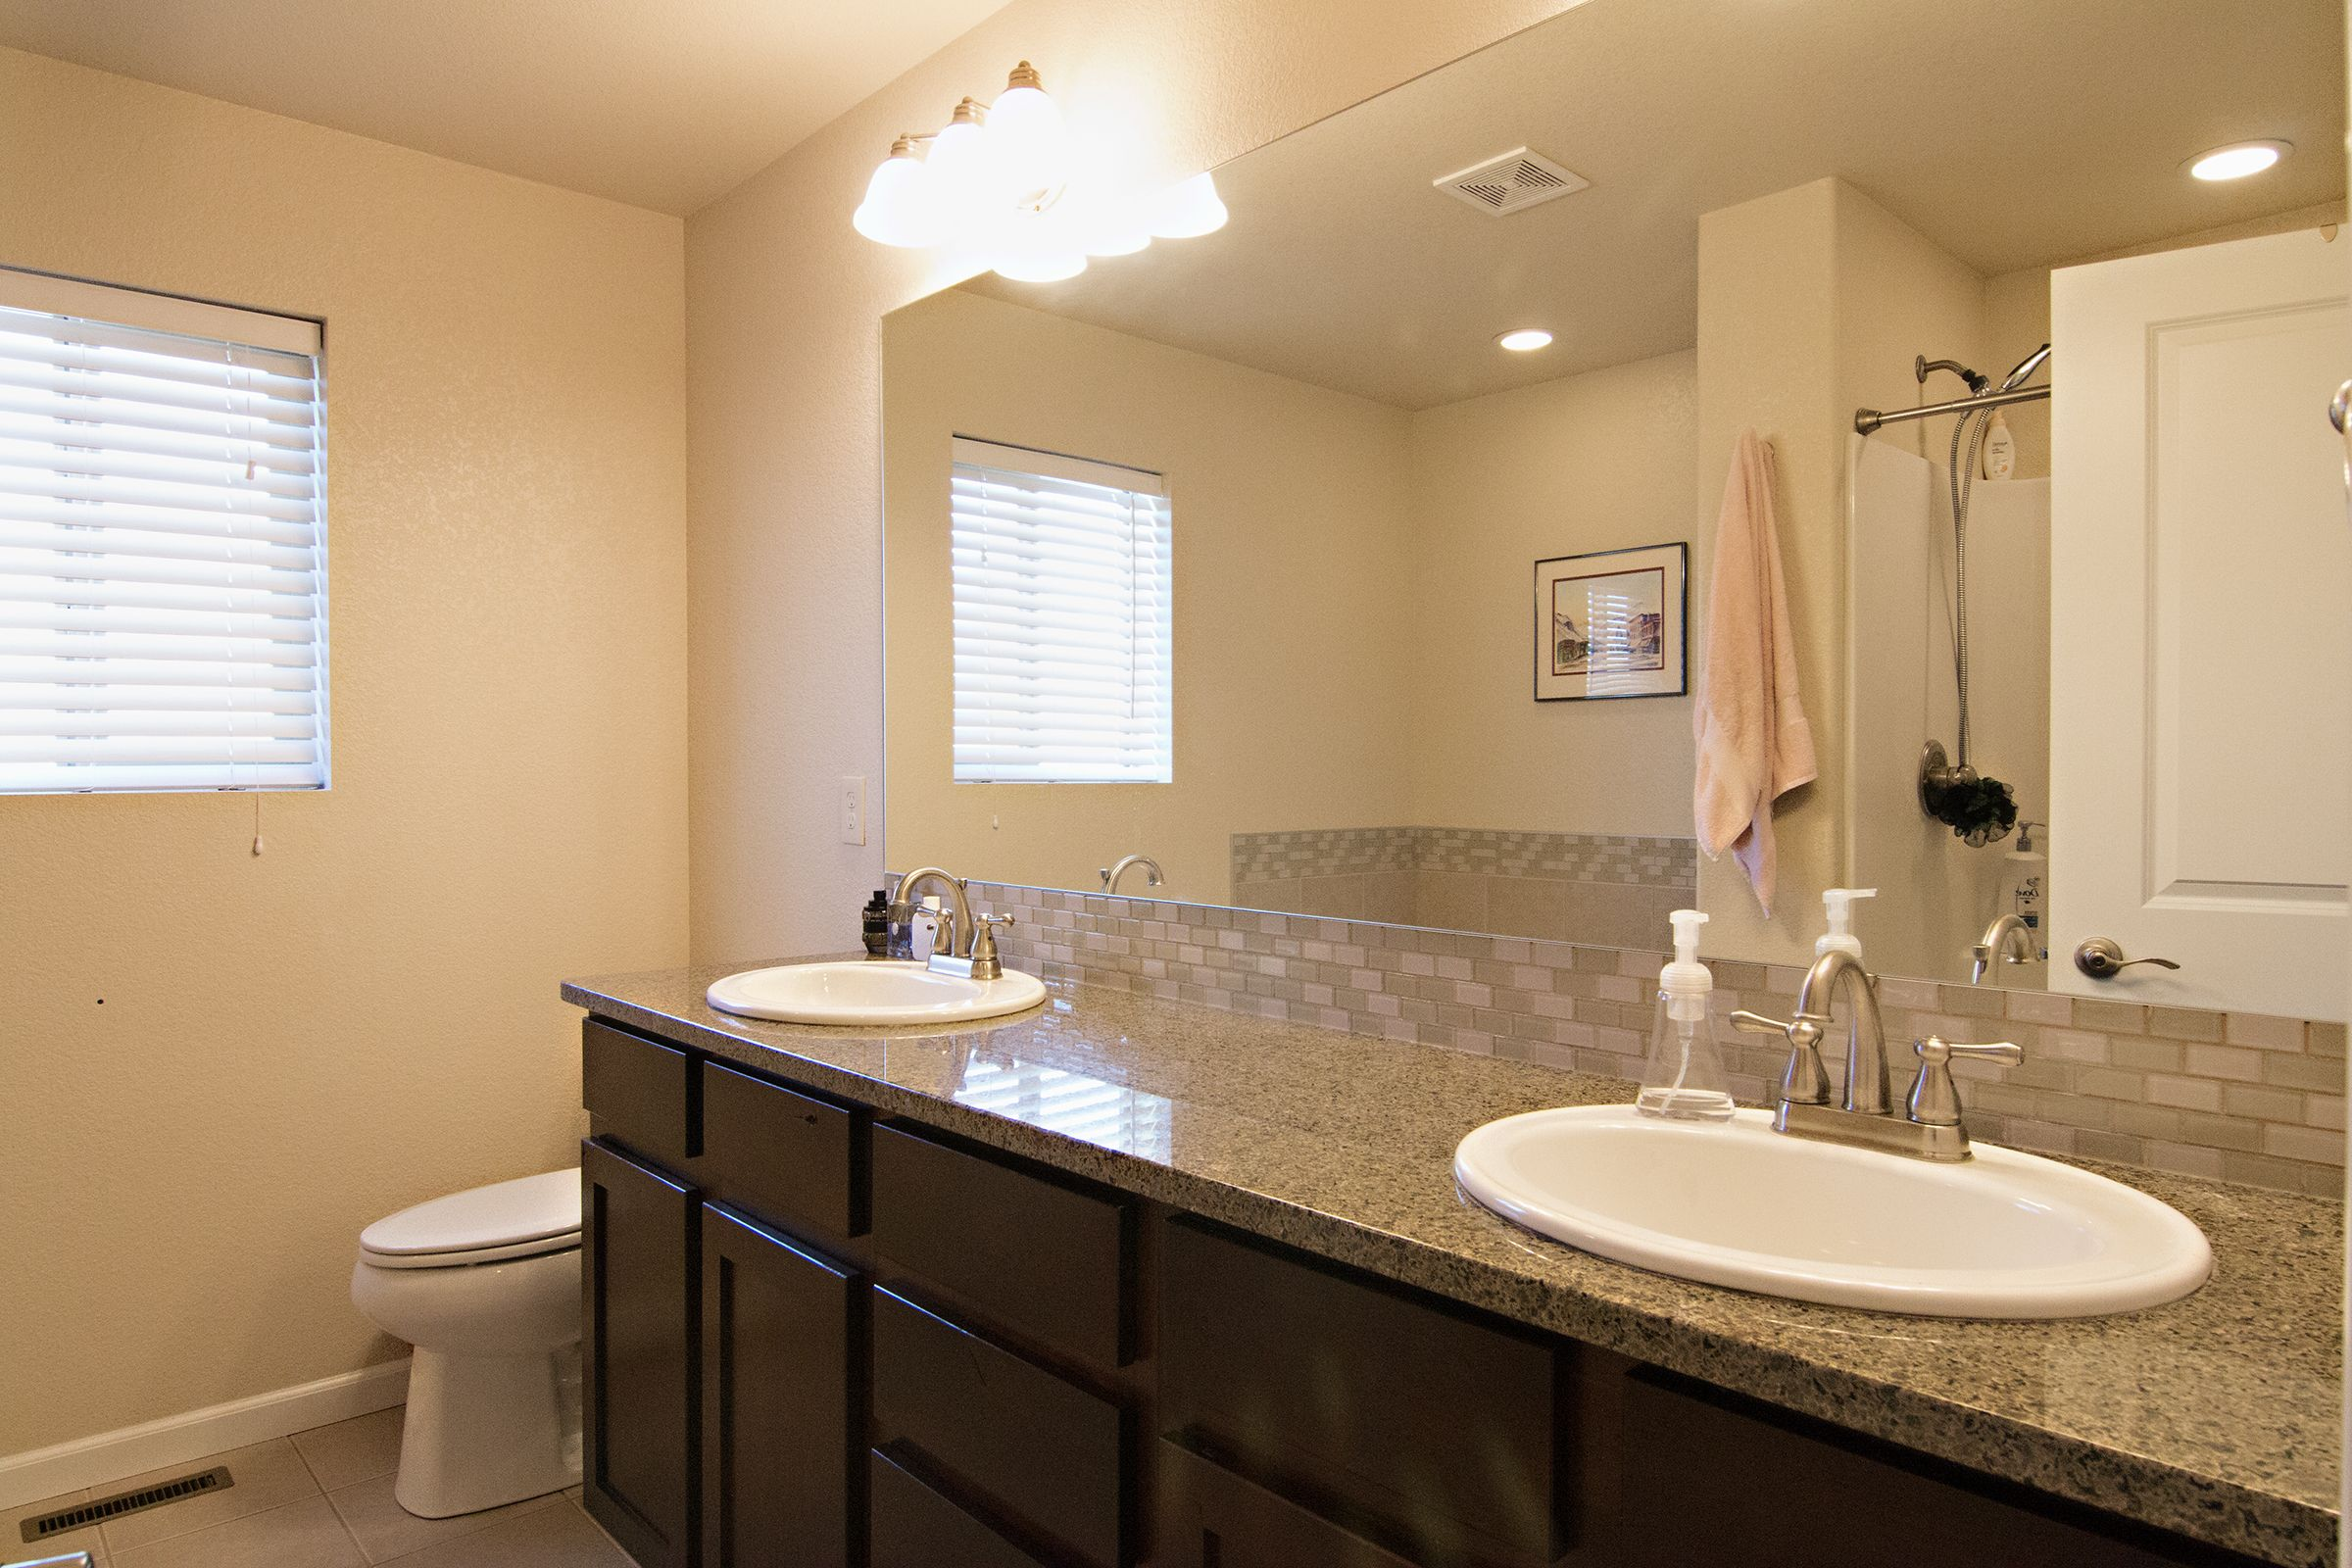 The 5 piece master bathroom at 2308 Big Lost Dr is beautifully upgraded with grey granite and a complimenting backsplash.What do you think? Call Kimber Parker at Team Properties Group for your showing today 307-670-2750